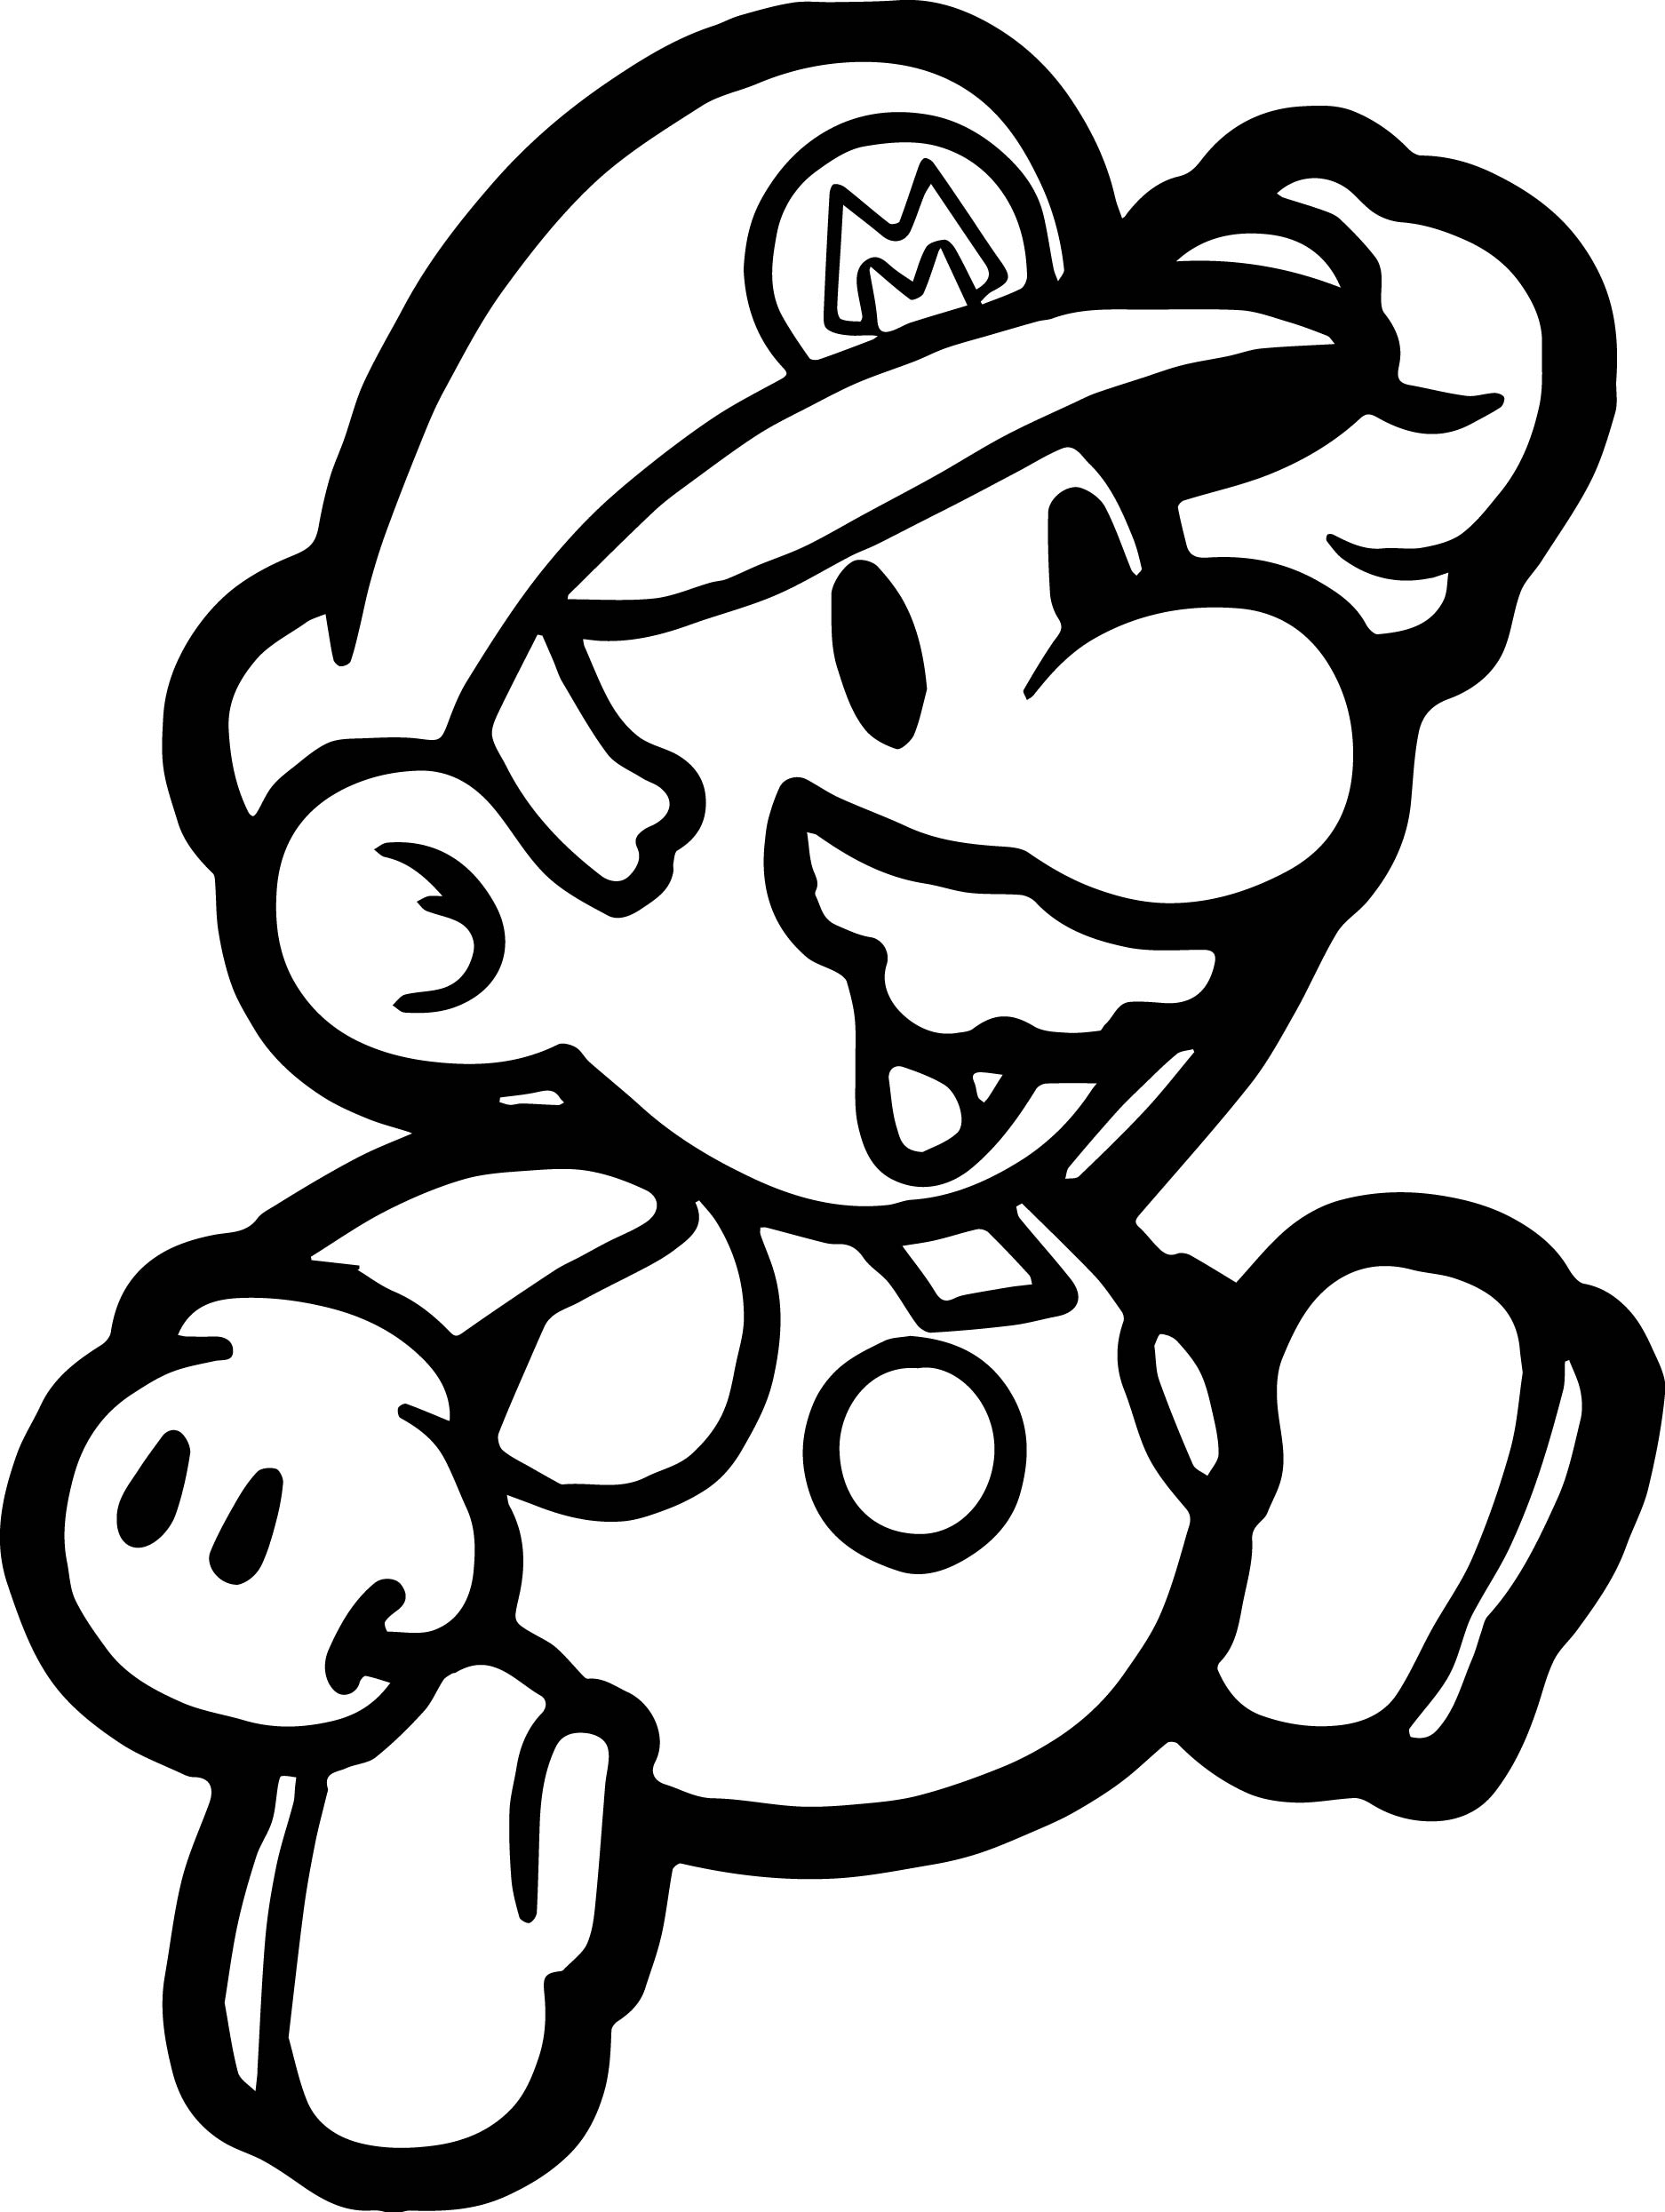 paper mario coloring pages - photo#6